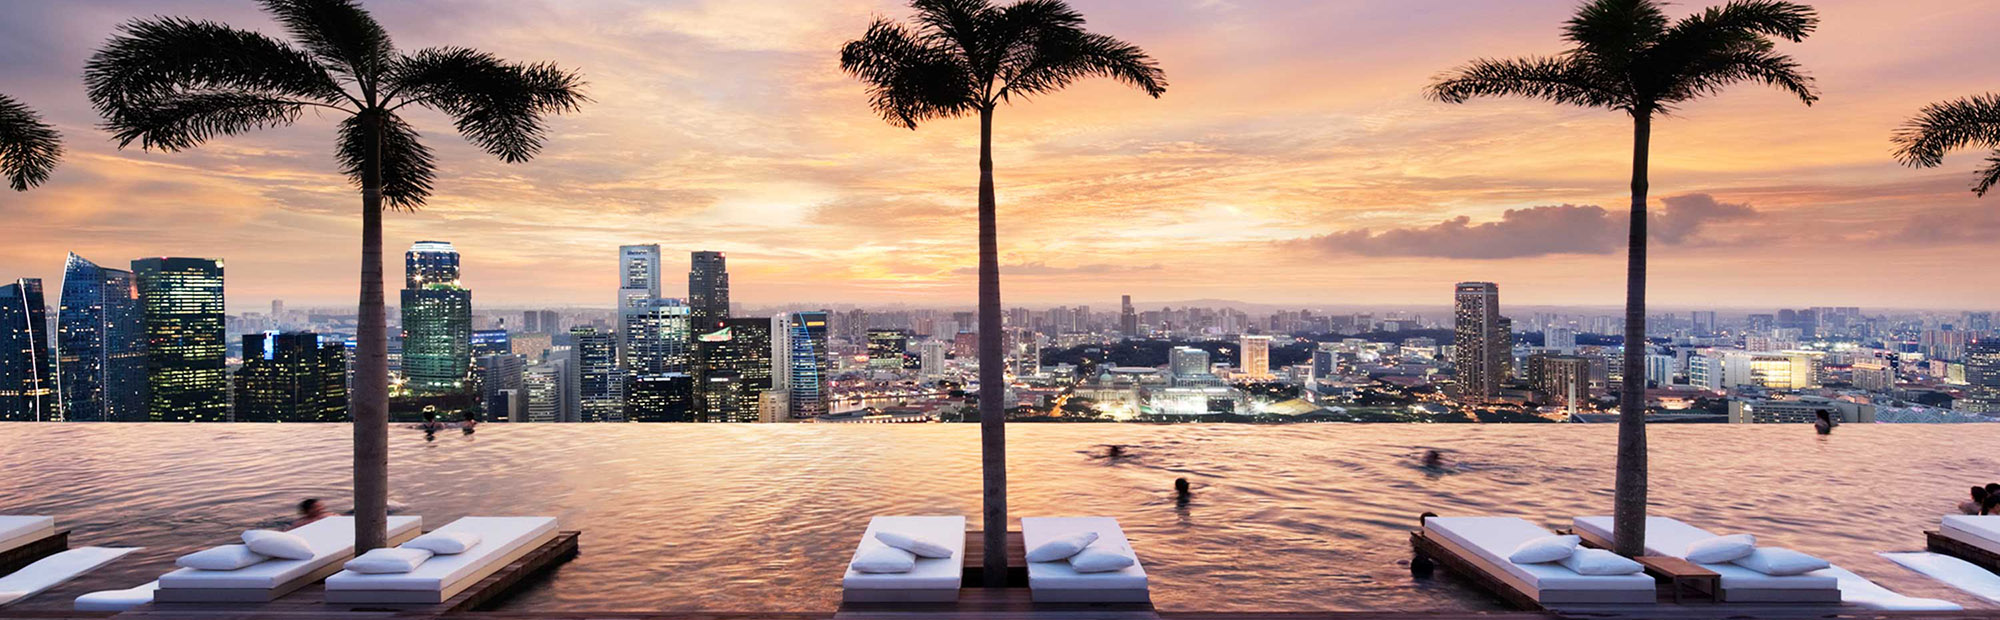 Most-amazing-spaces-venuerific-blog-marina-bay-sands-palm-trees